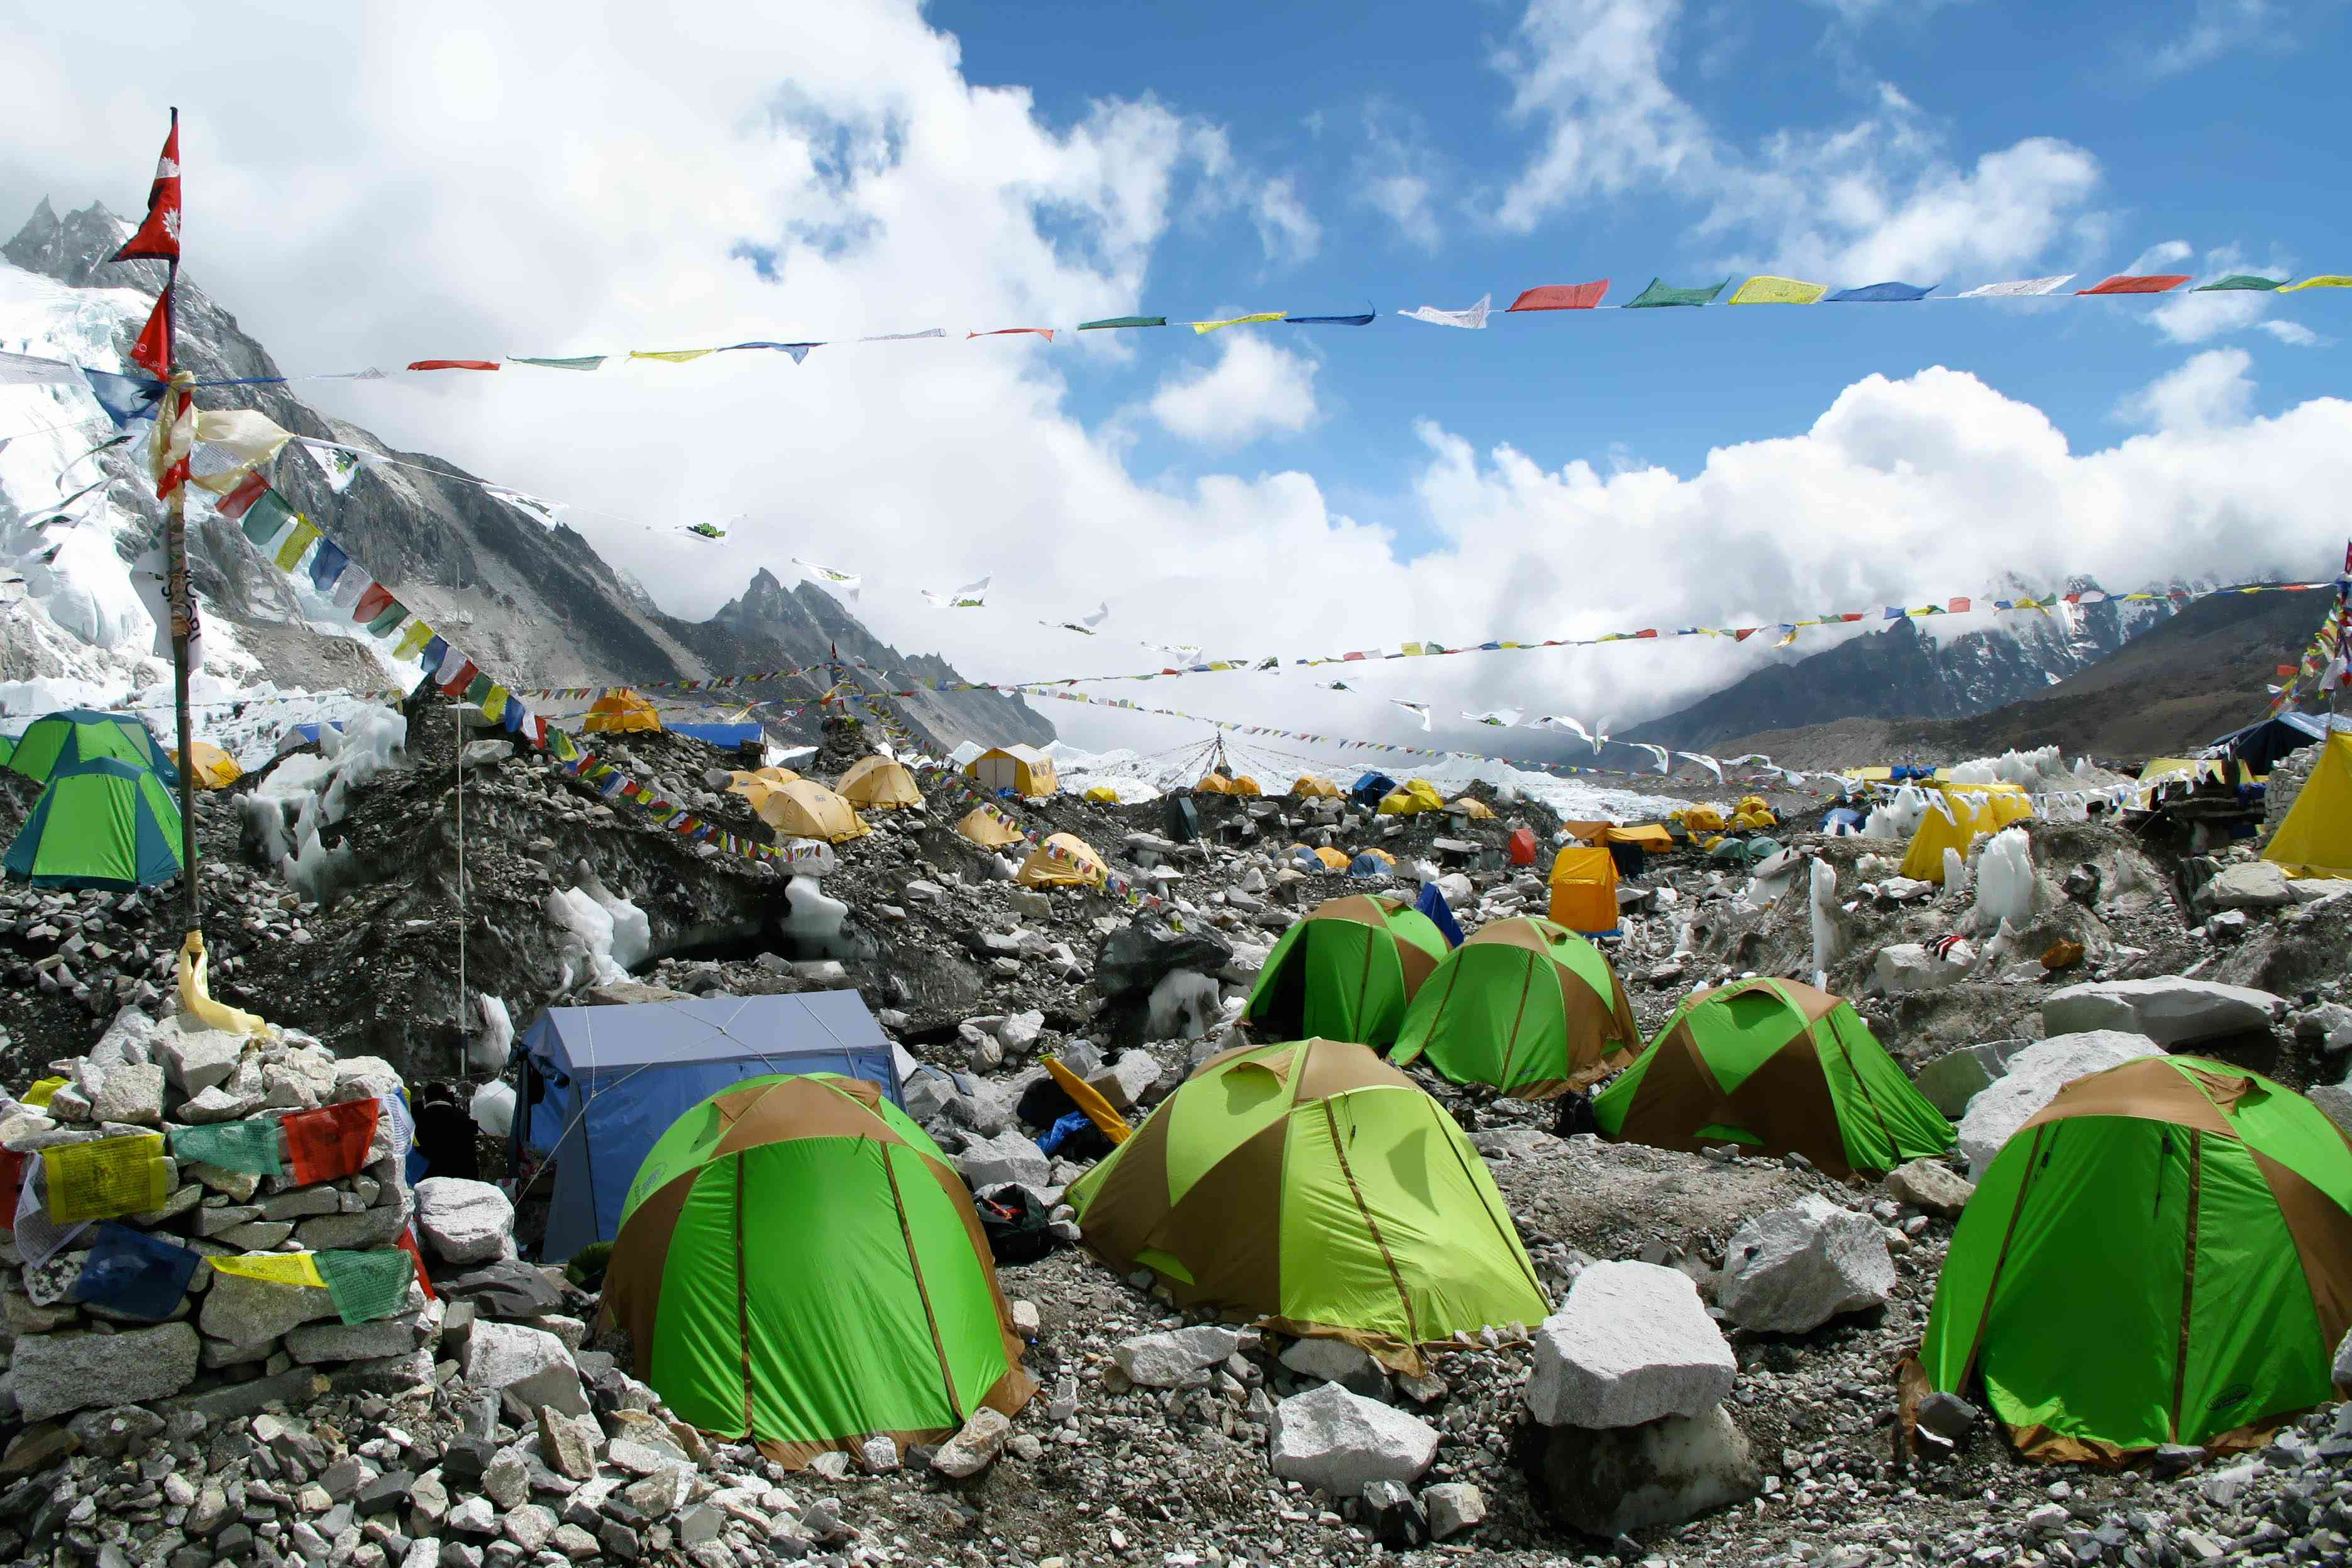 Colorful Tents at Everest Base Camp, Everest Region, Nepal